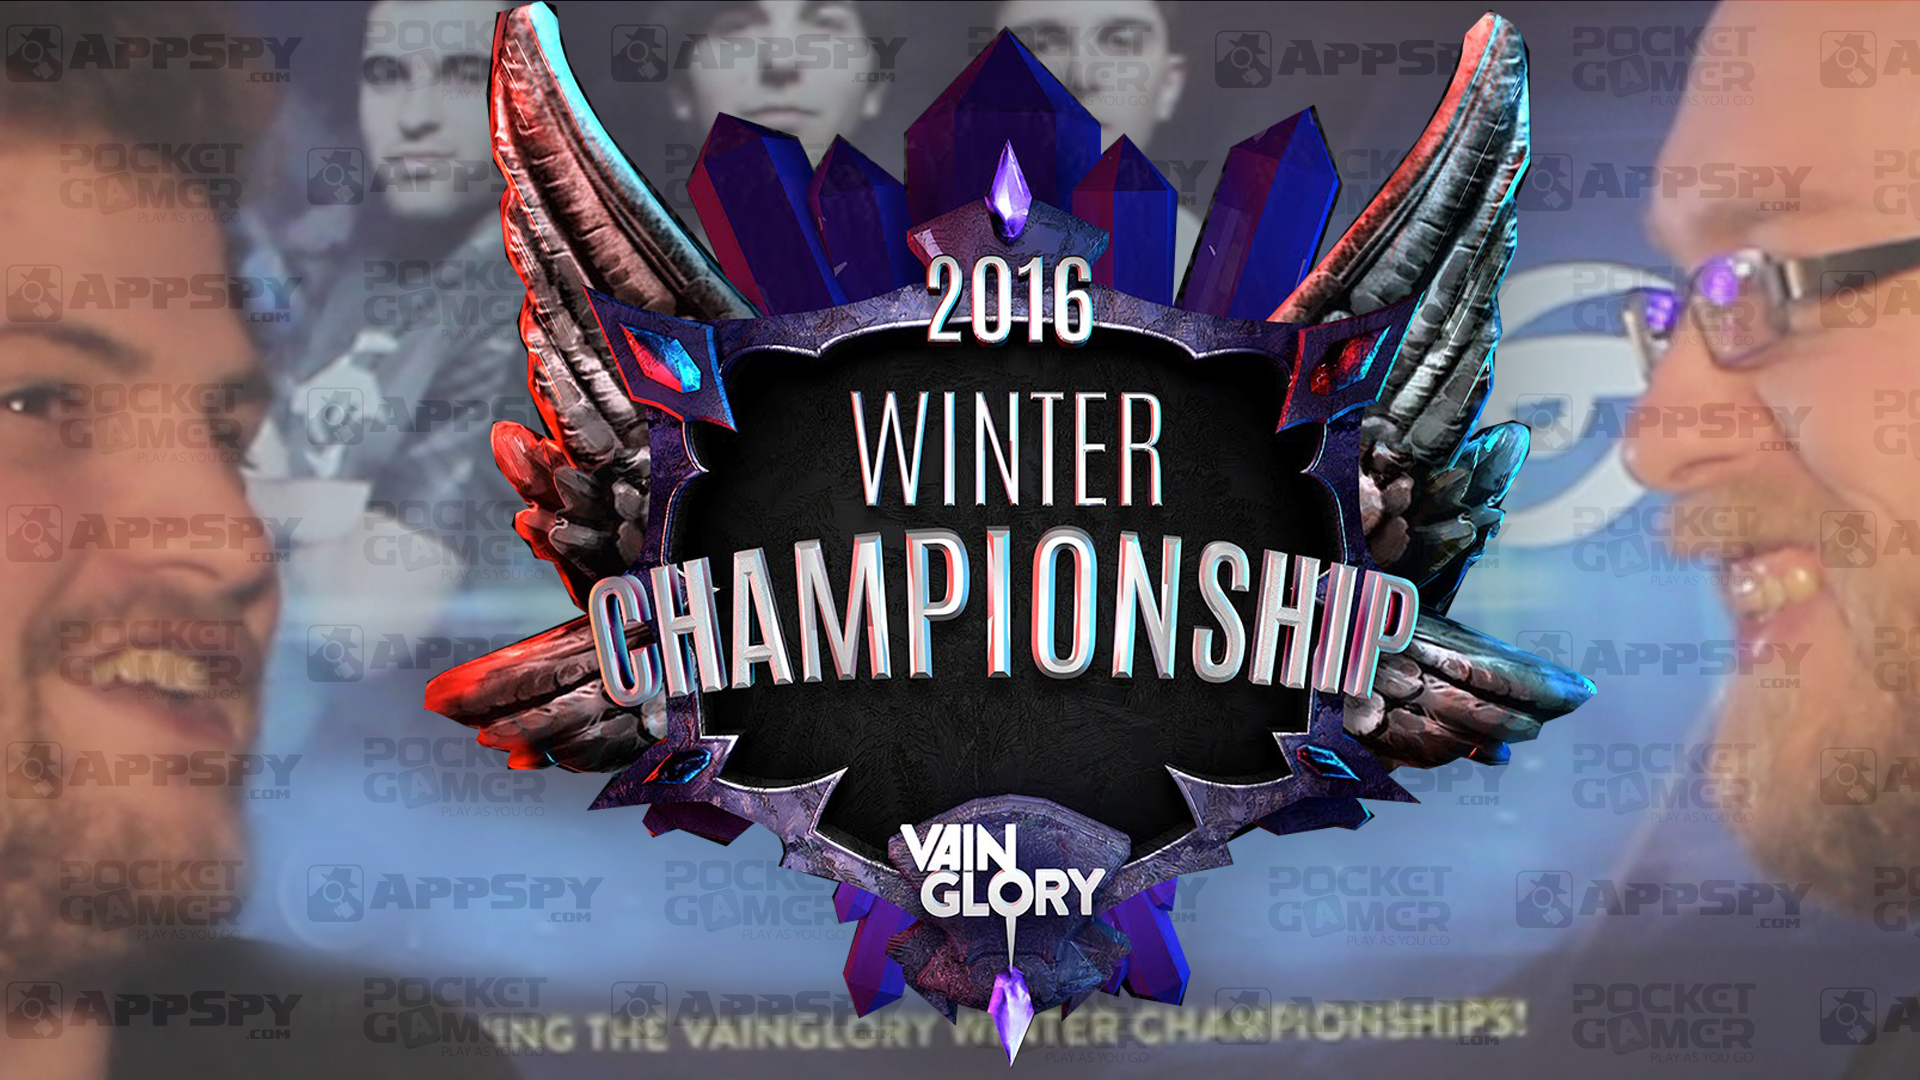 AppSpy went to the Vainglory EU Winter Championships 2016